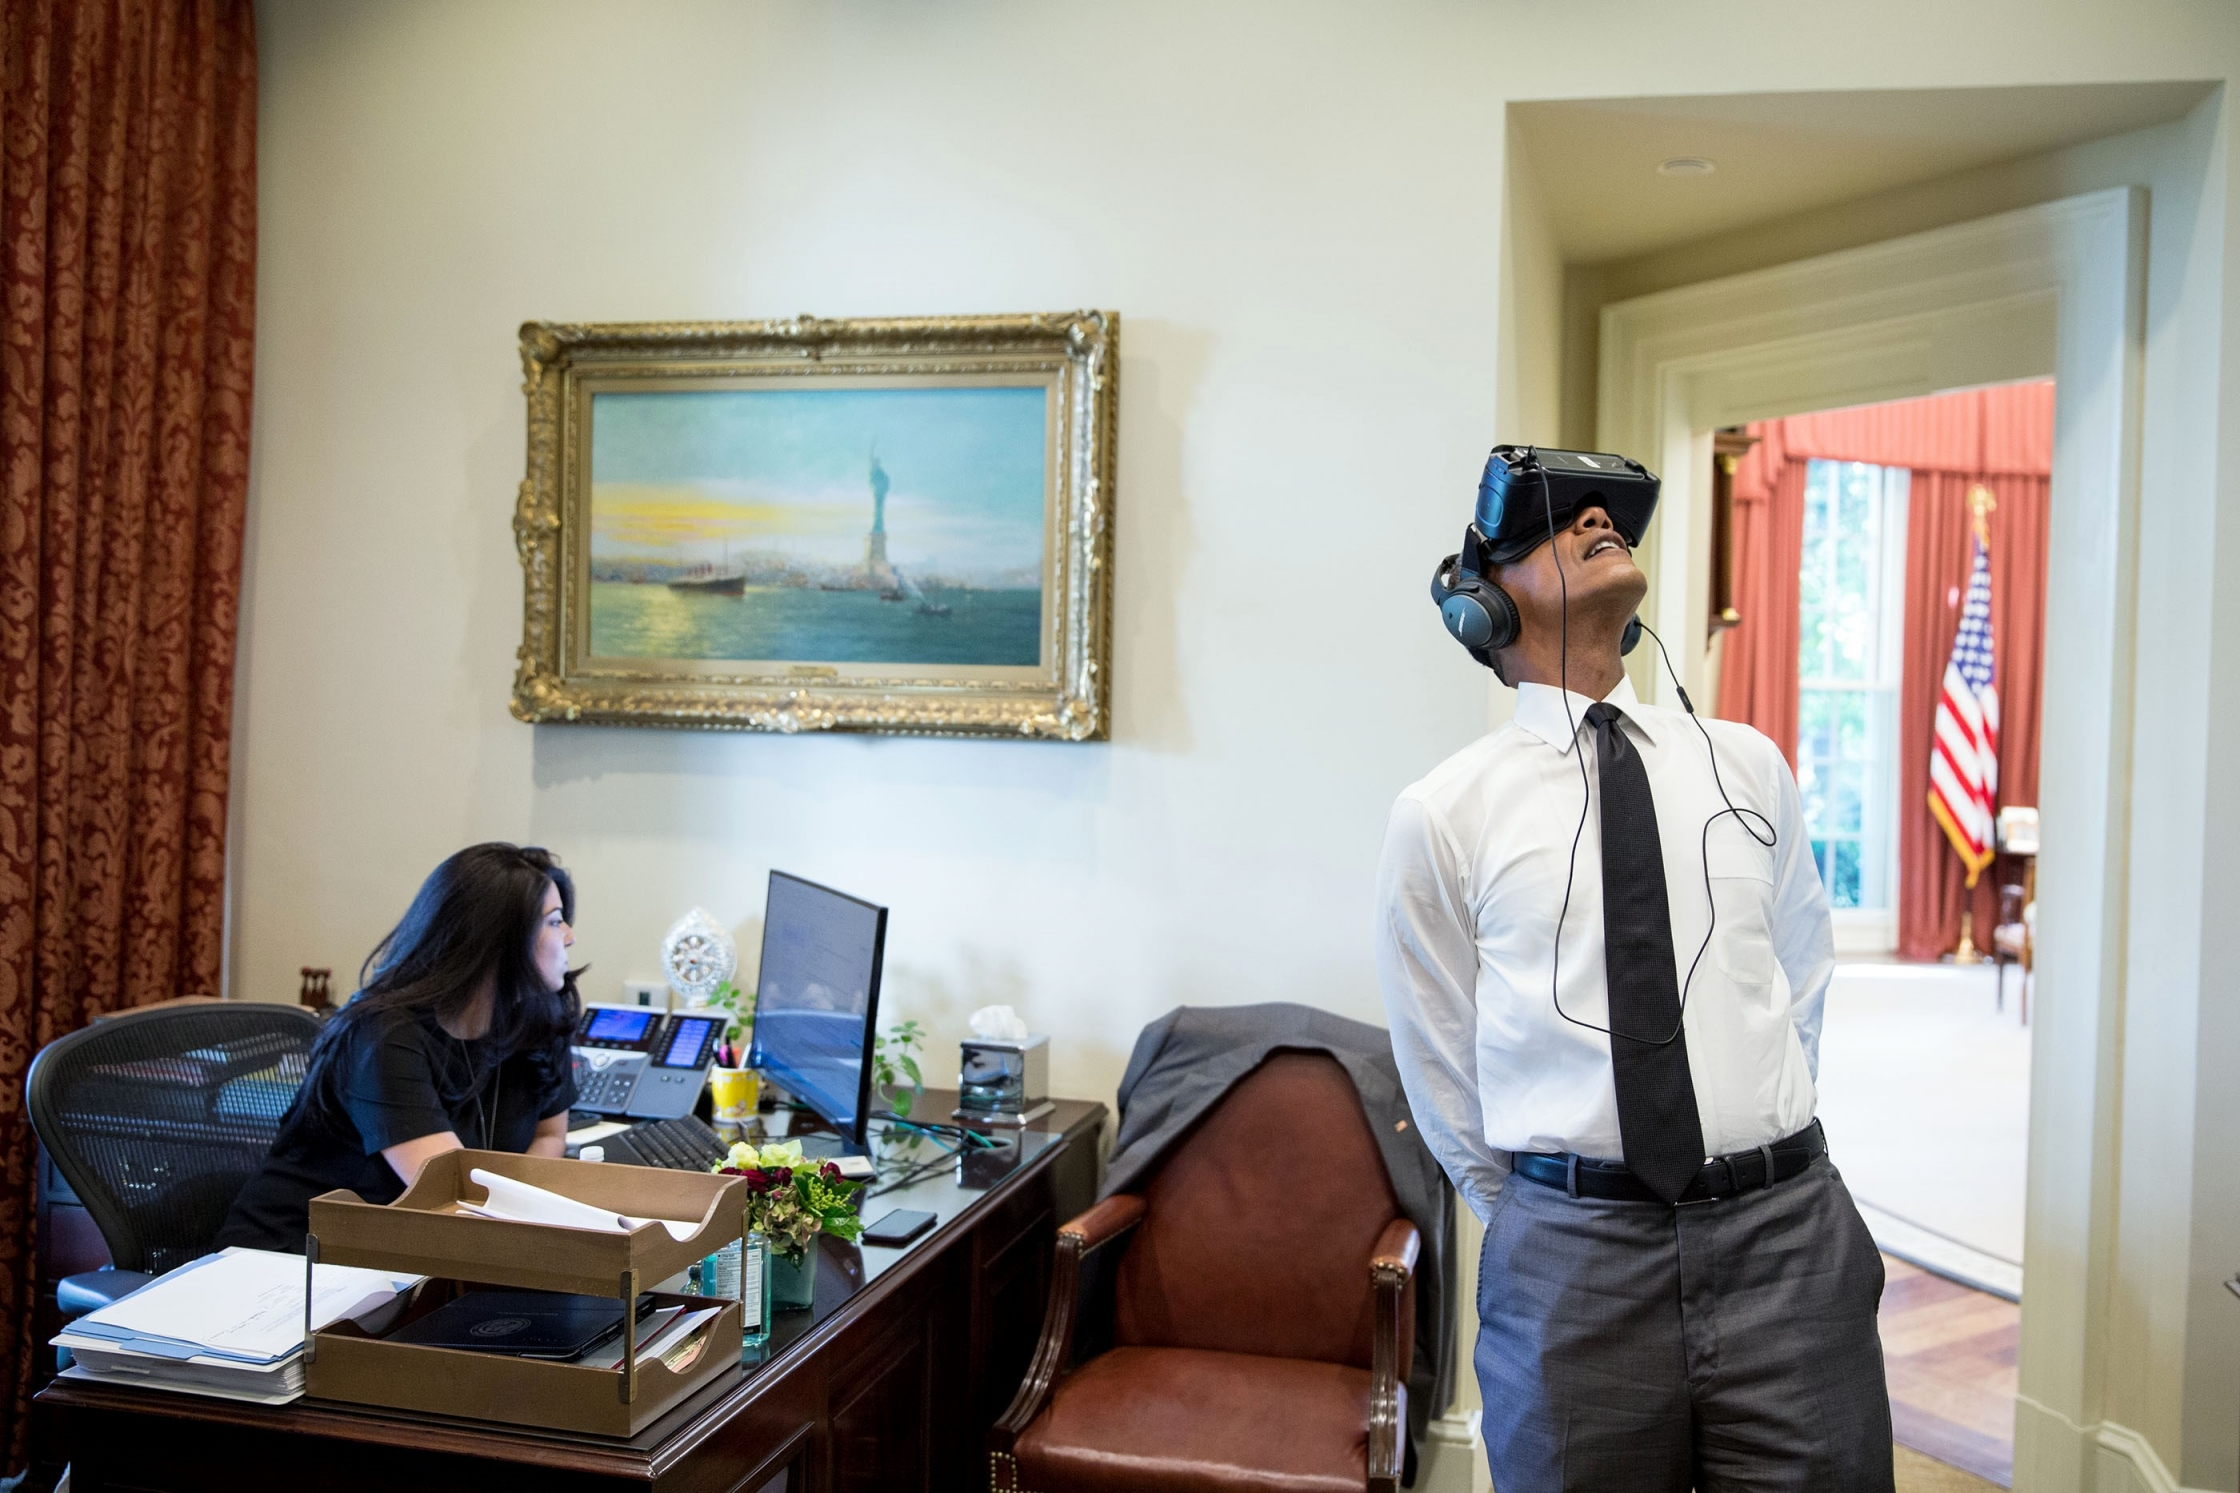 virtual office tools. President Barack Obama Uses A Virtual Reality Headset In The Outer Oval Office, Aug. Office Tools